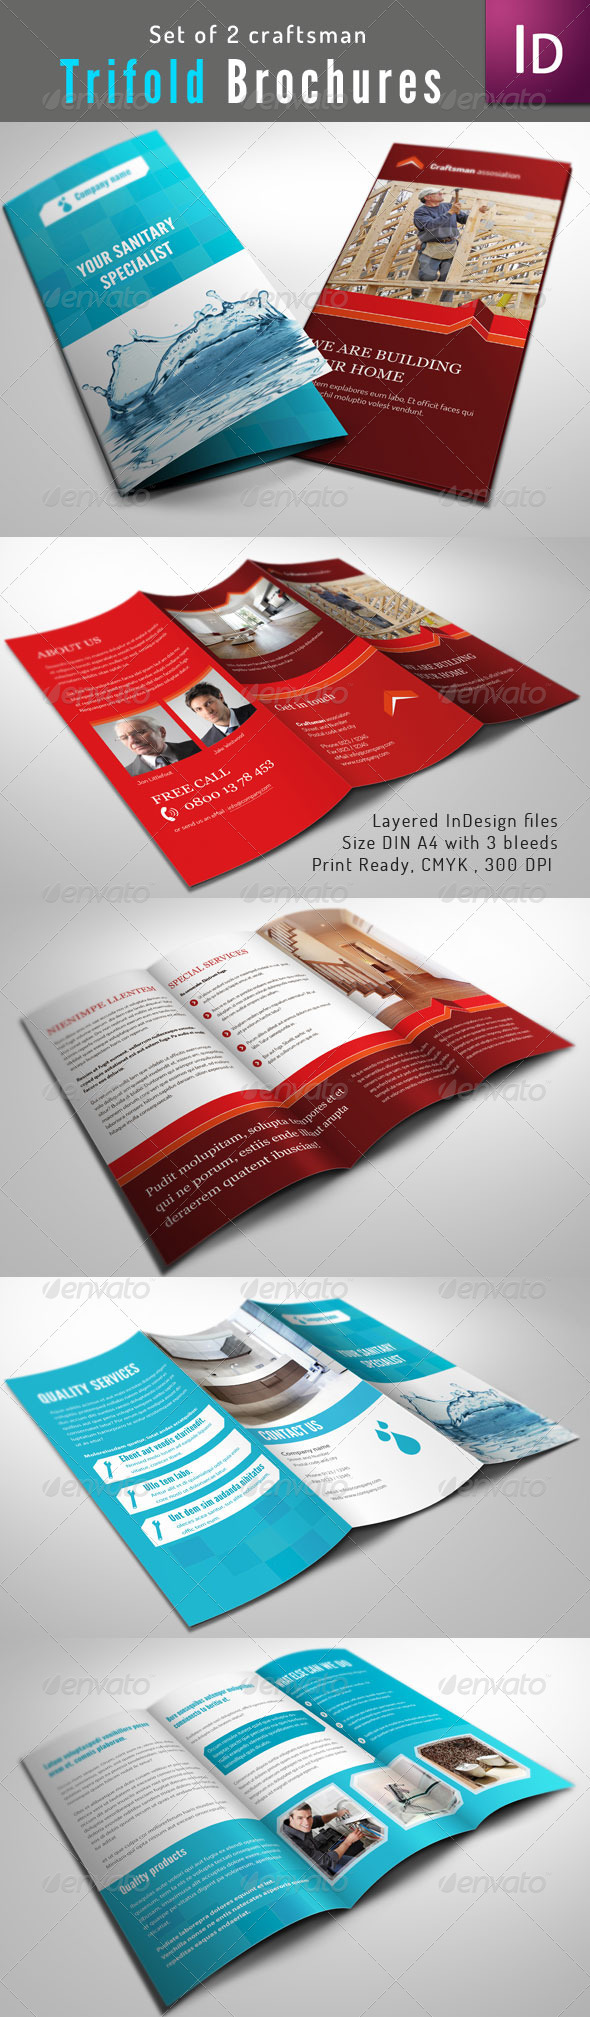 Set of 2 Trifold Brochure - Corporate Brochures